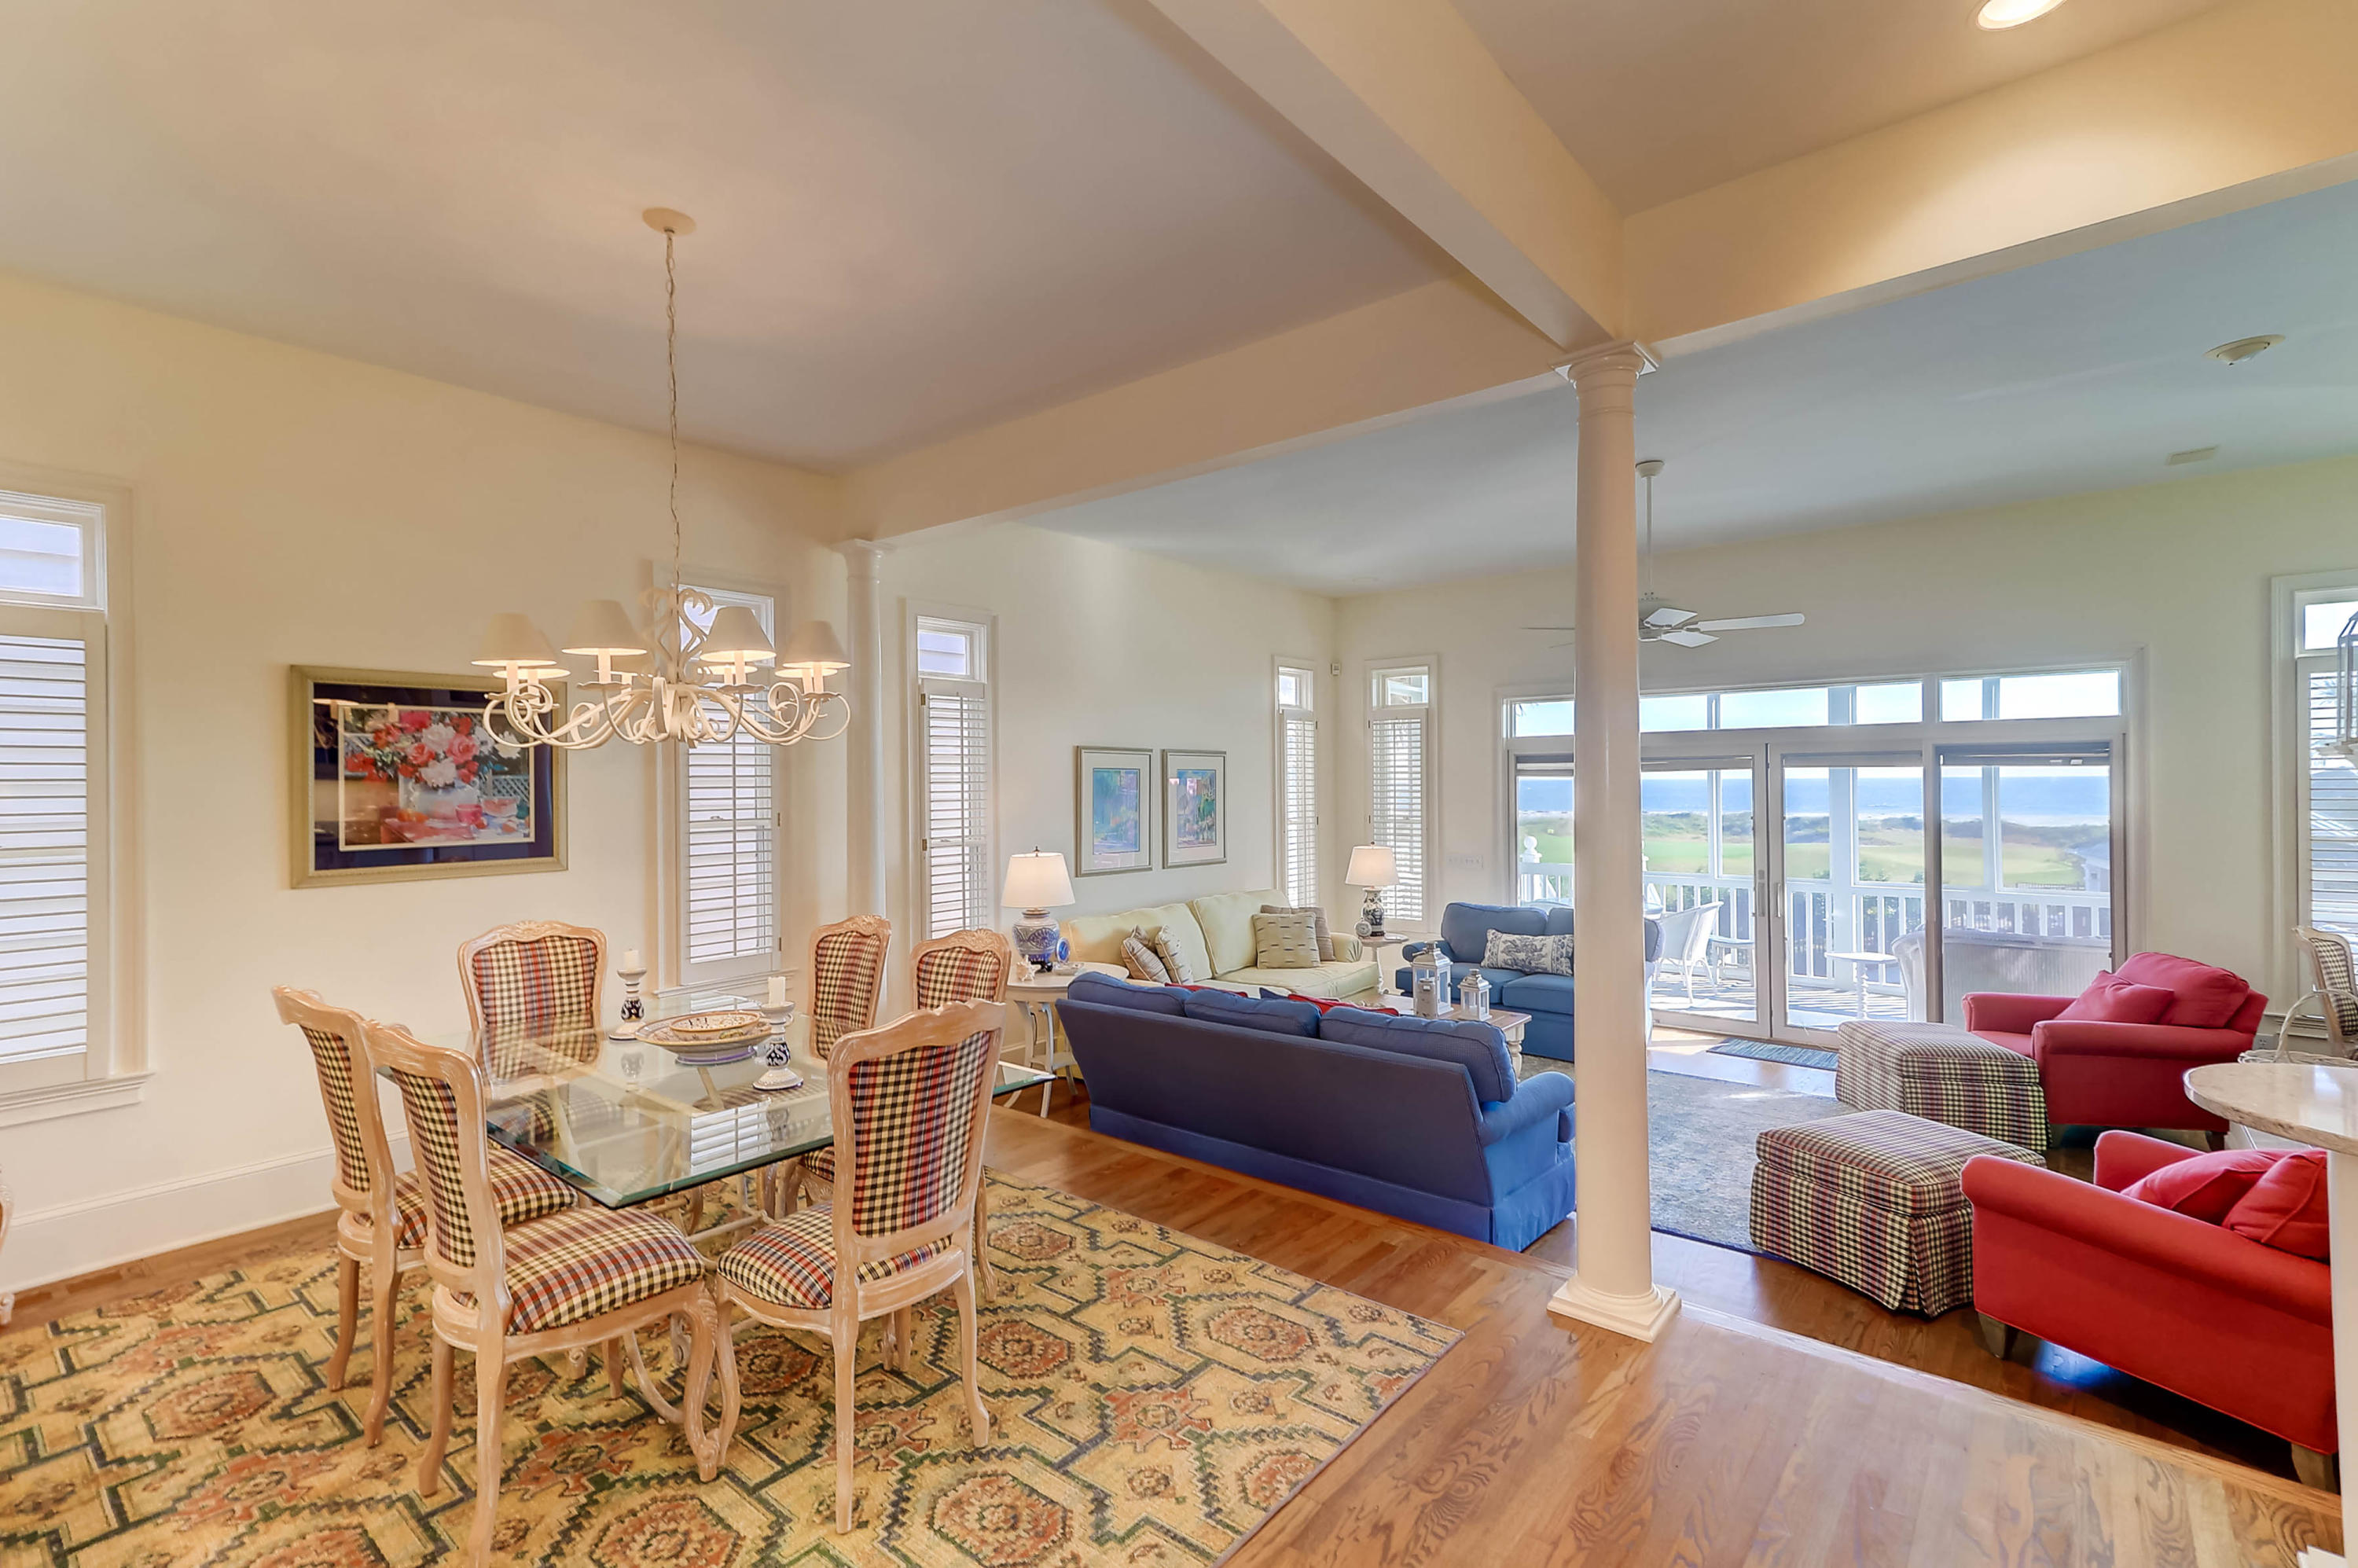 Wild Dunes Homes For Sale - 36 Ocean Point, Isle of Palms, SC - 33